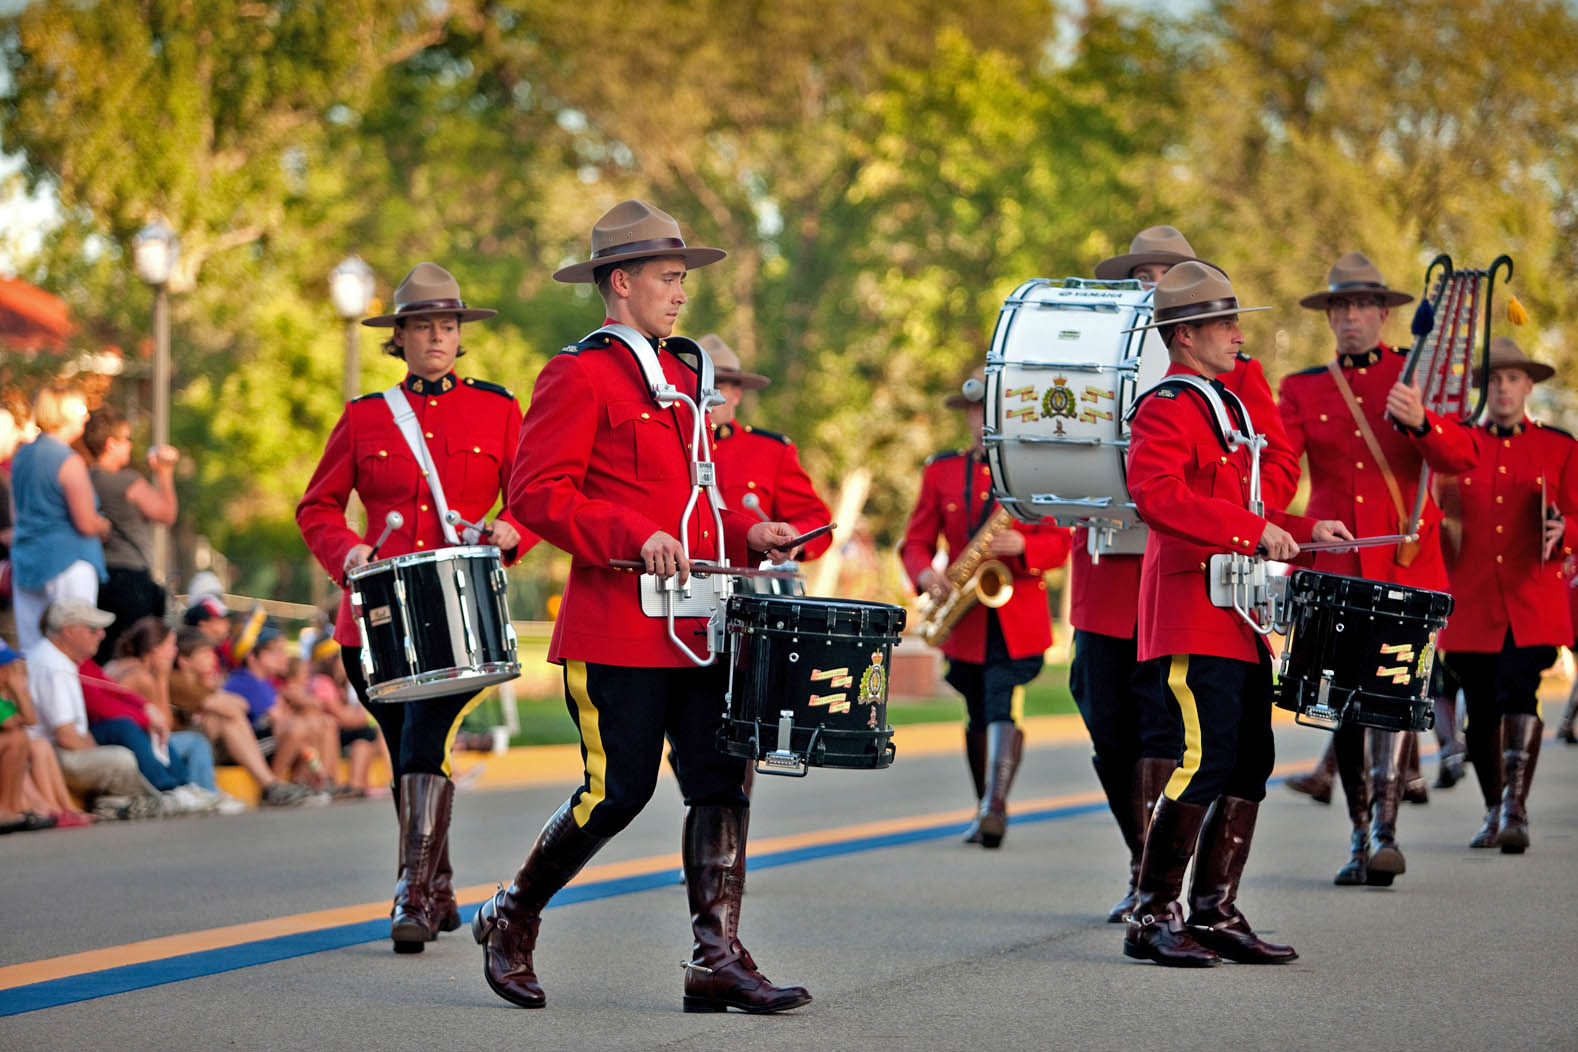 RCMP Sunset Retreat Ceremony (c) Tourism Saskatchewan/Greg Huszar Photography